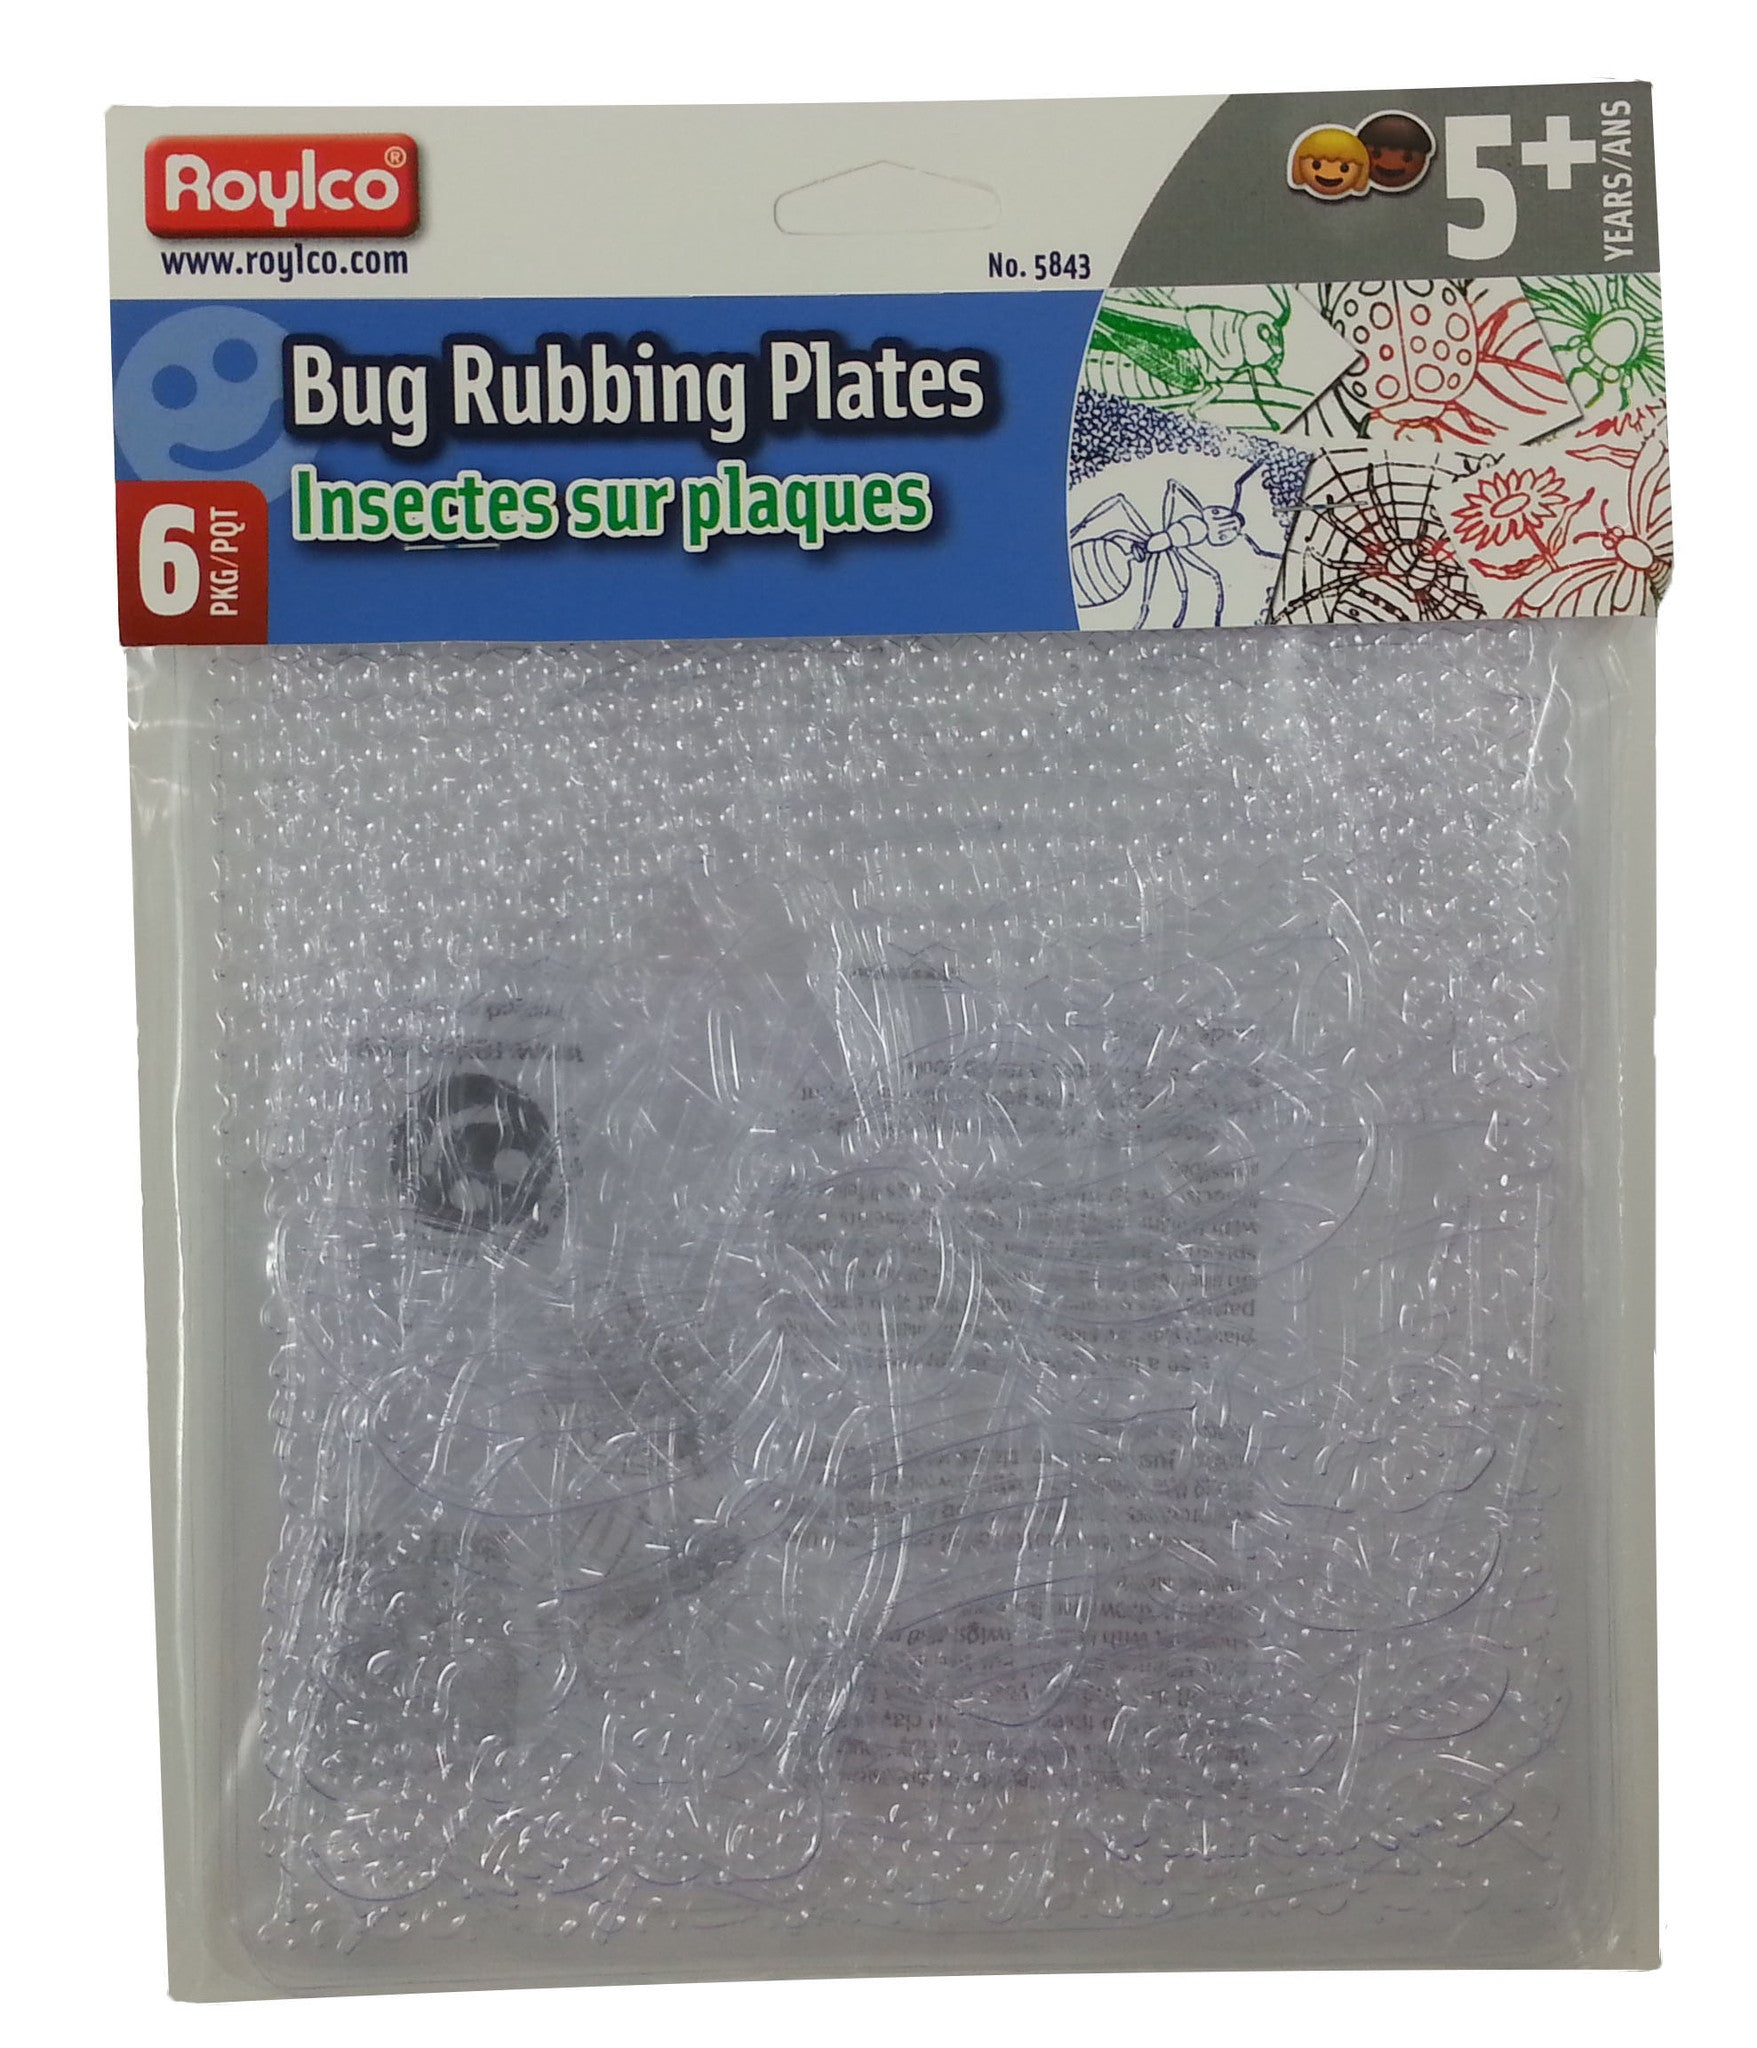 BUG Rubbing Plates 6 Pk by Roylco - Off The Wall Toys and Gifts